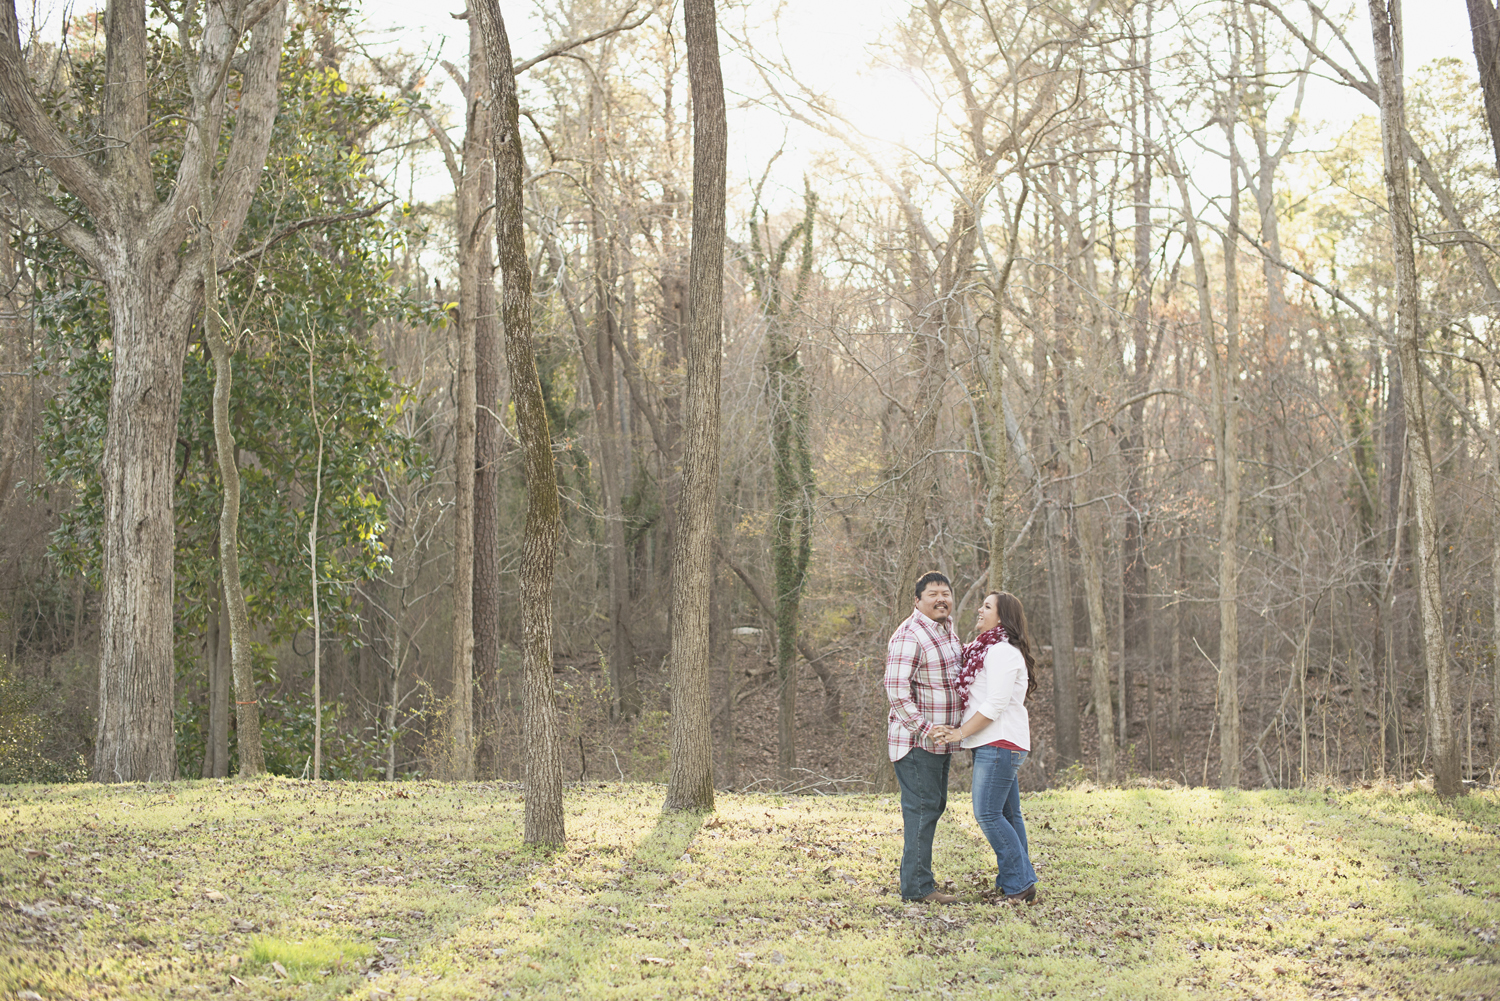 Romantic engagement session | Red plaid and jeans